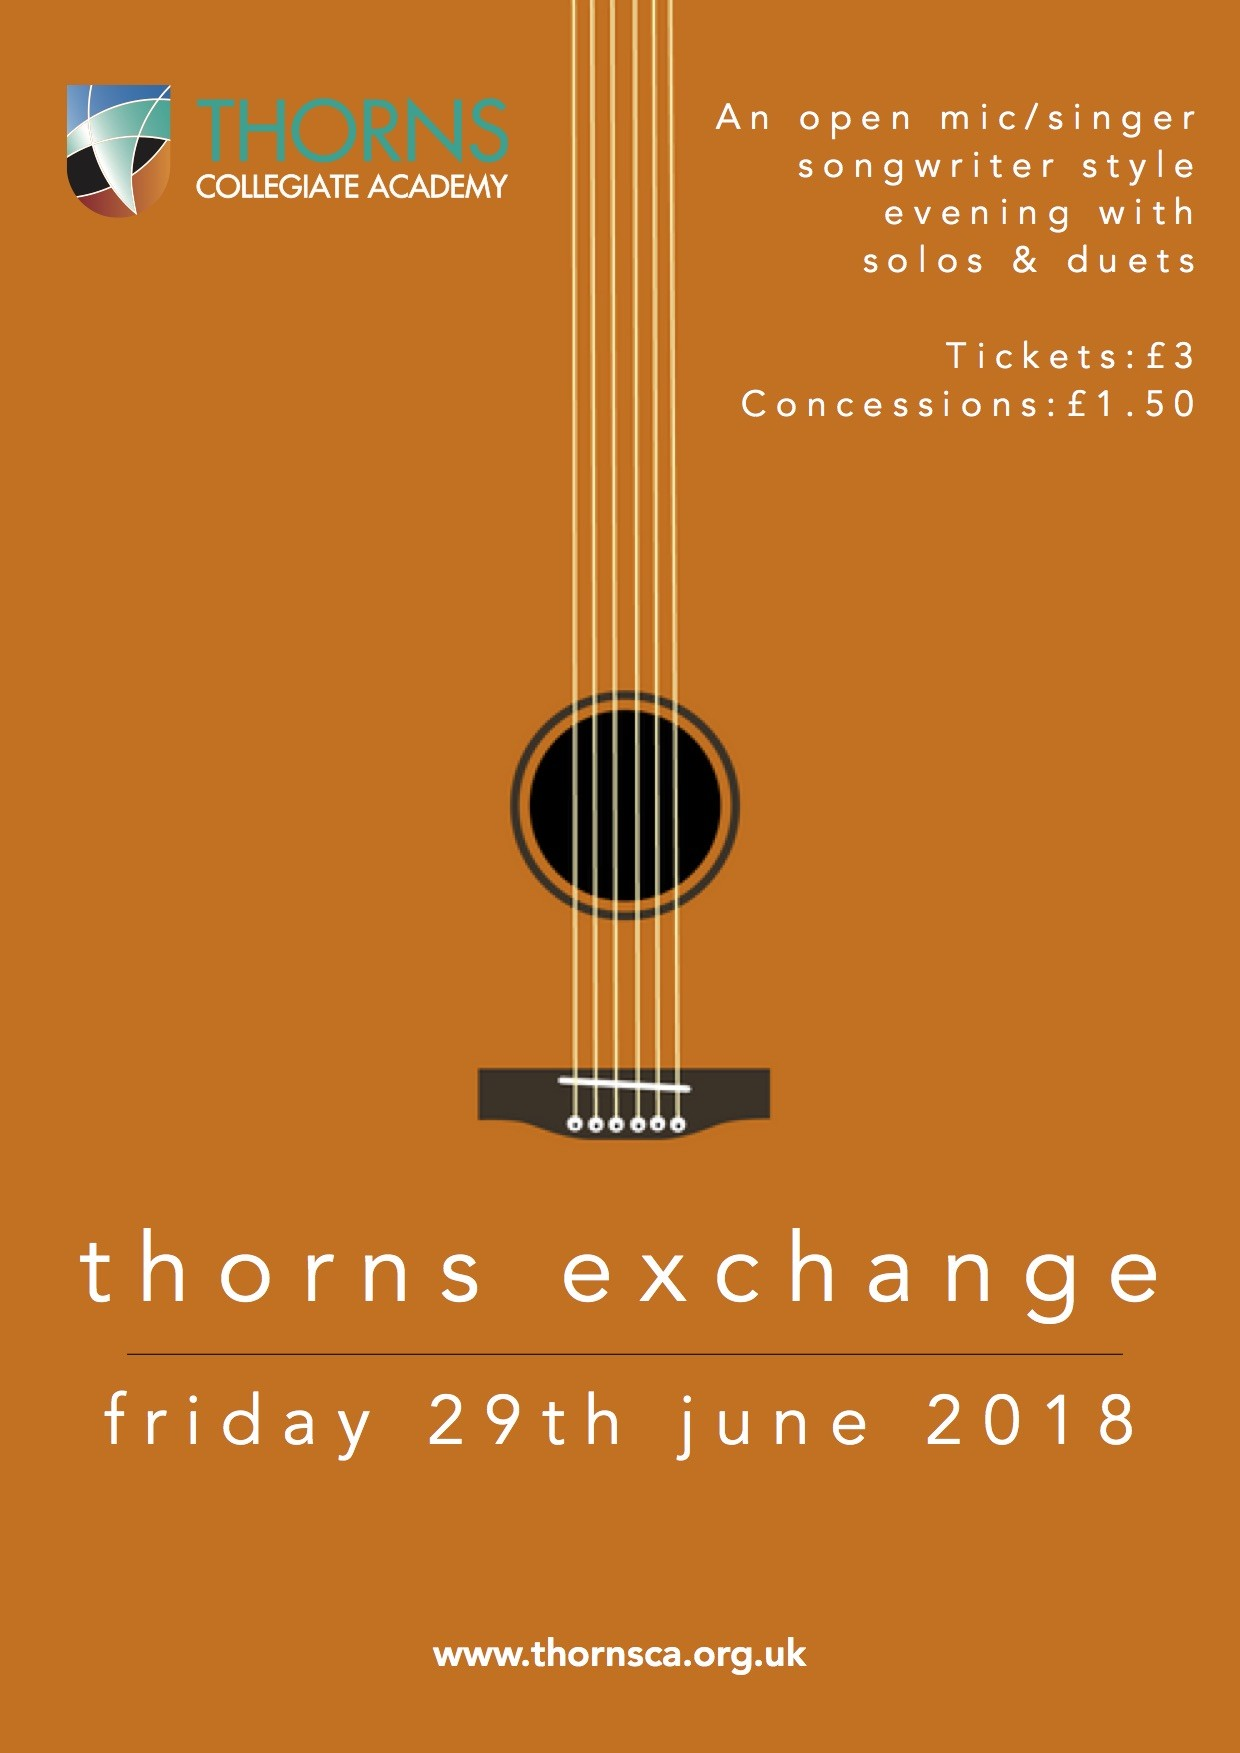 Thorns Musical Exchange